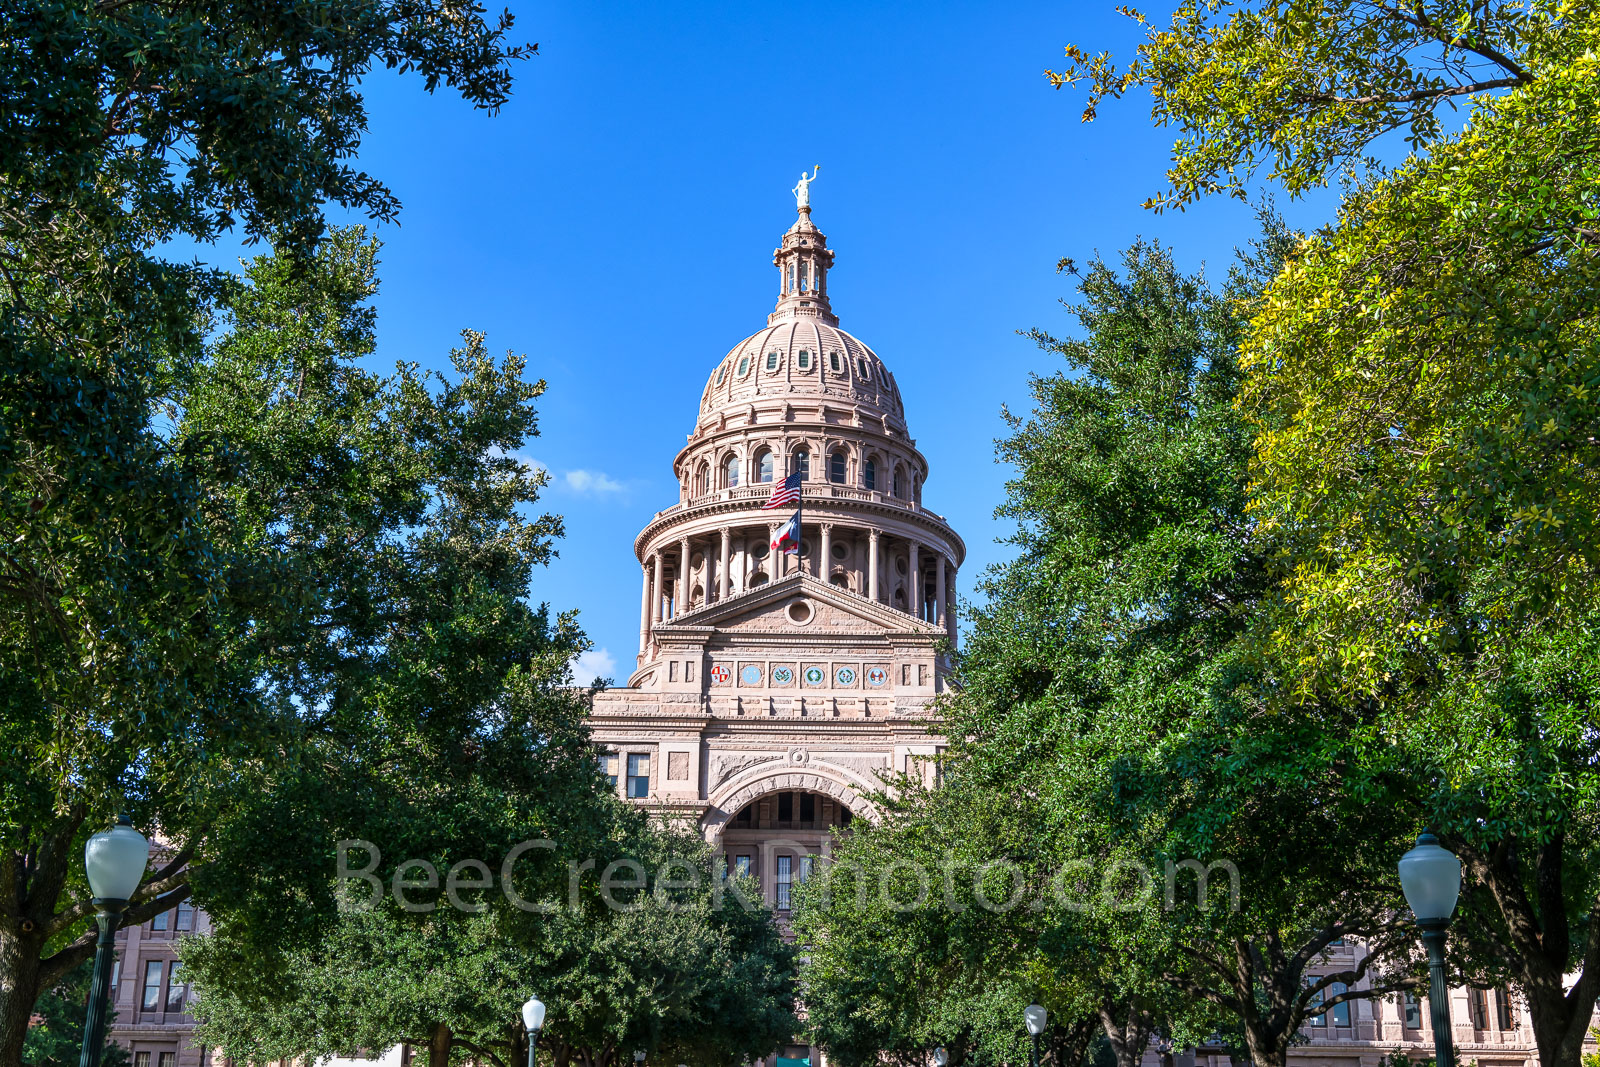 Capitol, Capital, Texas, building, Austin, south view, Congress ave., Capitol of Texas, Dome, red granite, renaissance rivival architecture, state capital, state capitol, images of texas,